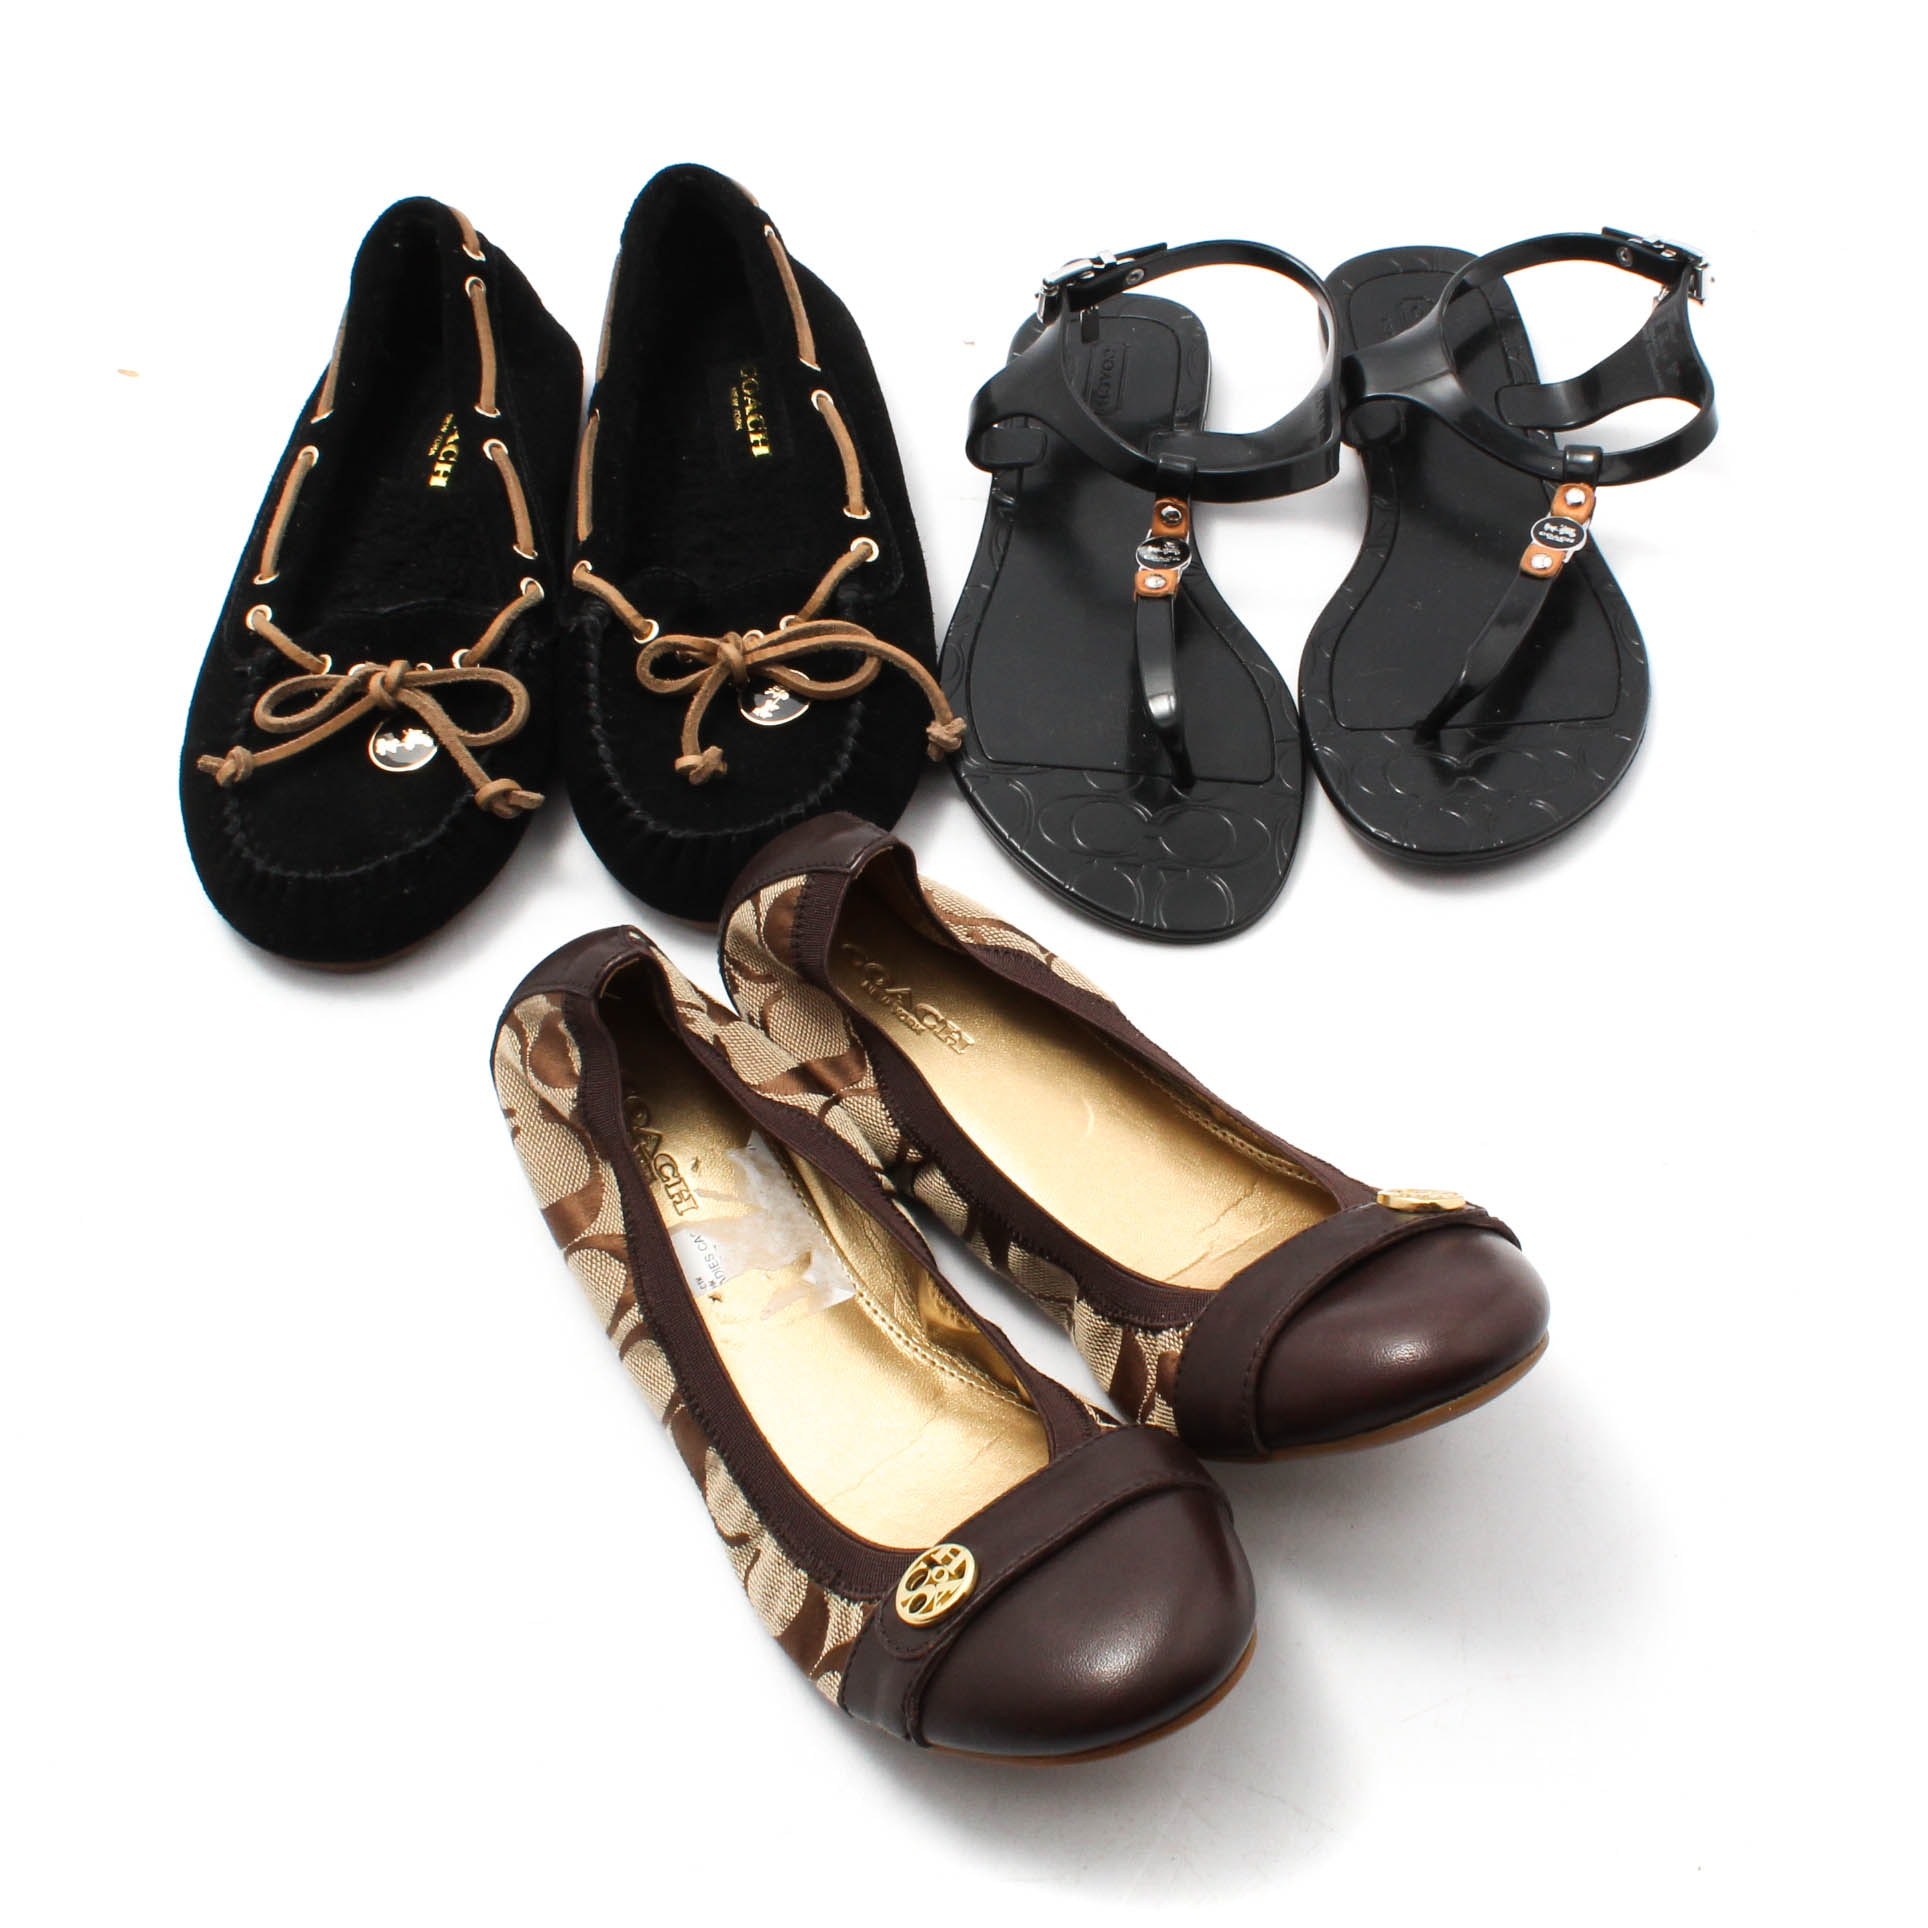 Coach Ballet Flats, Loafers and Sandals